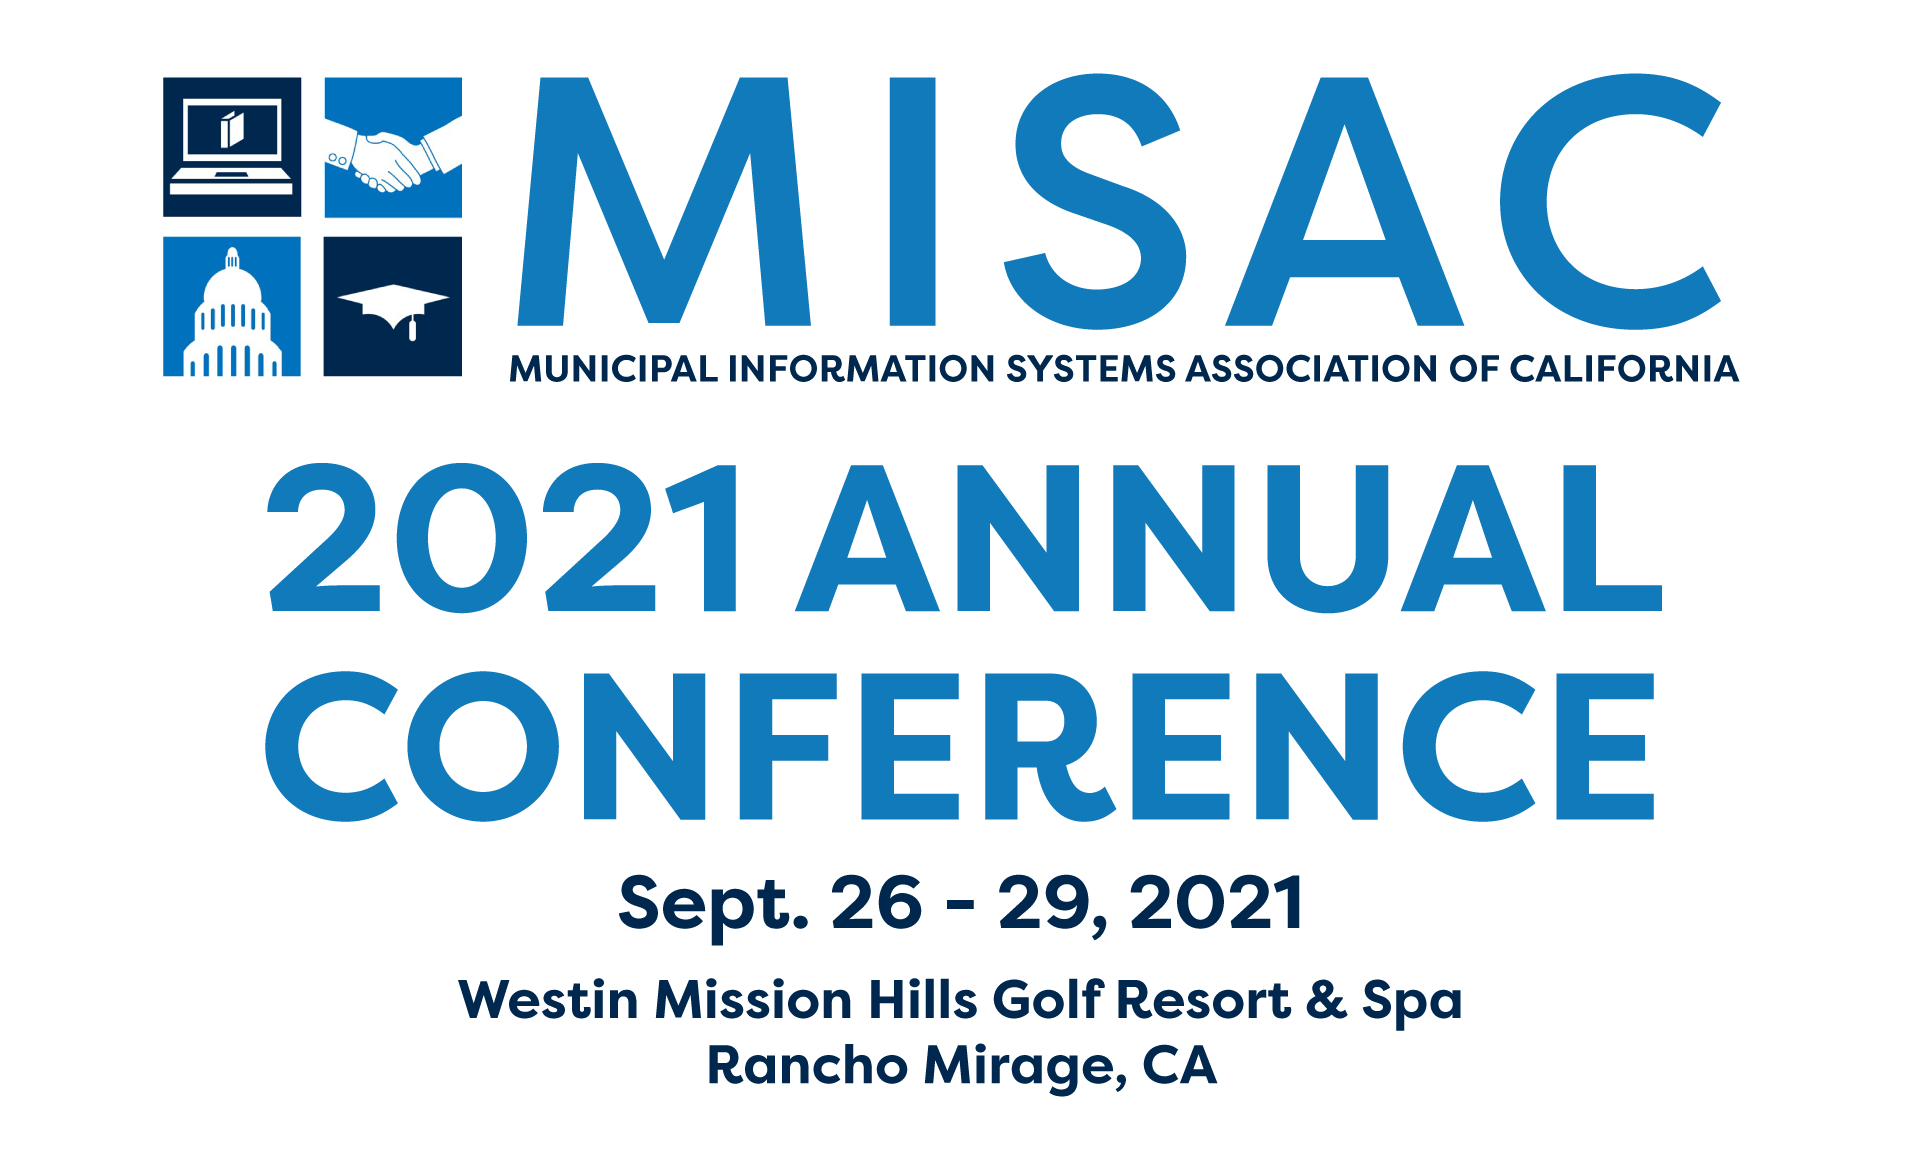 MISAC Annual Conference   Sept. 26 – 28, 2021   Rancho Mirage, CA